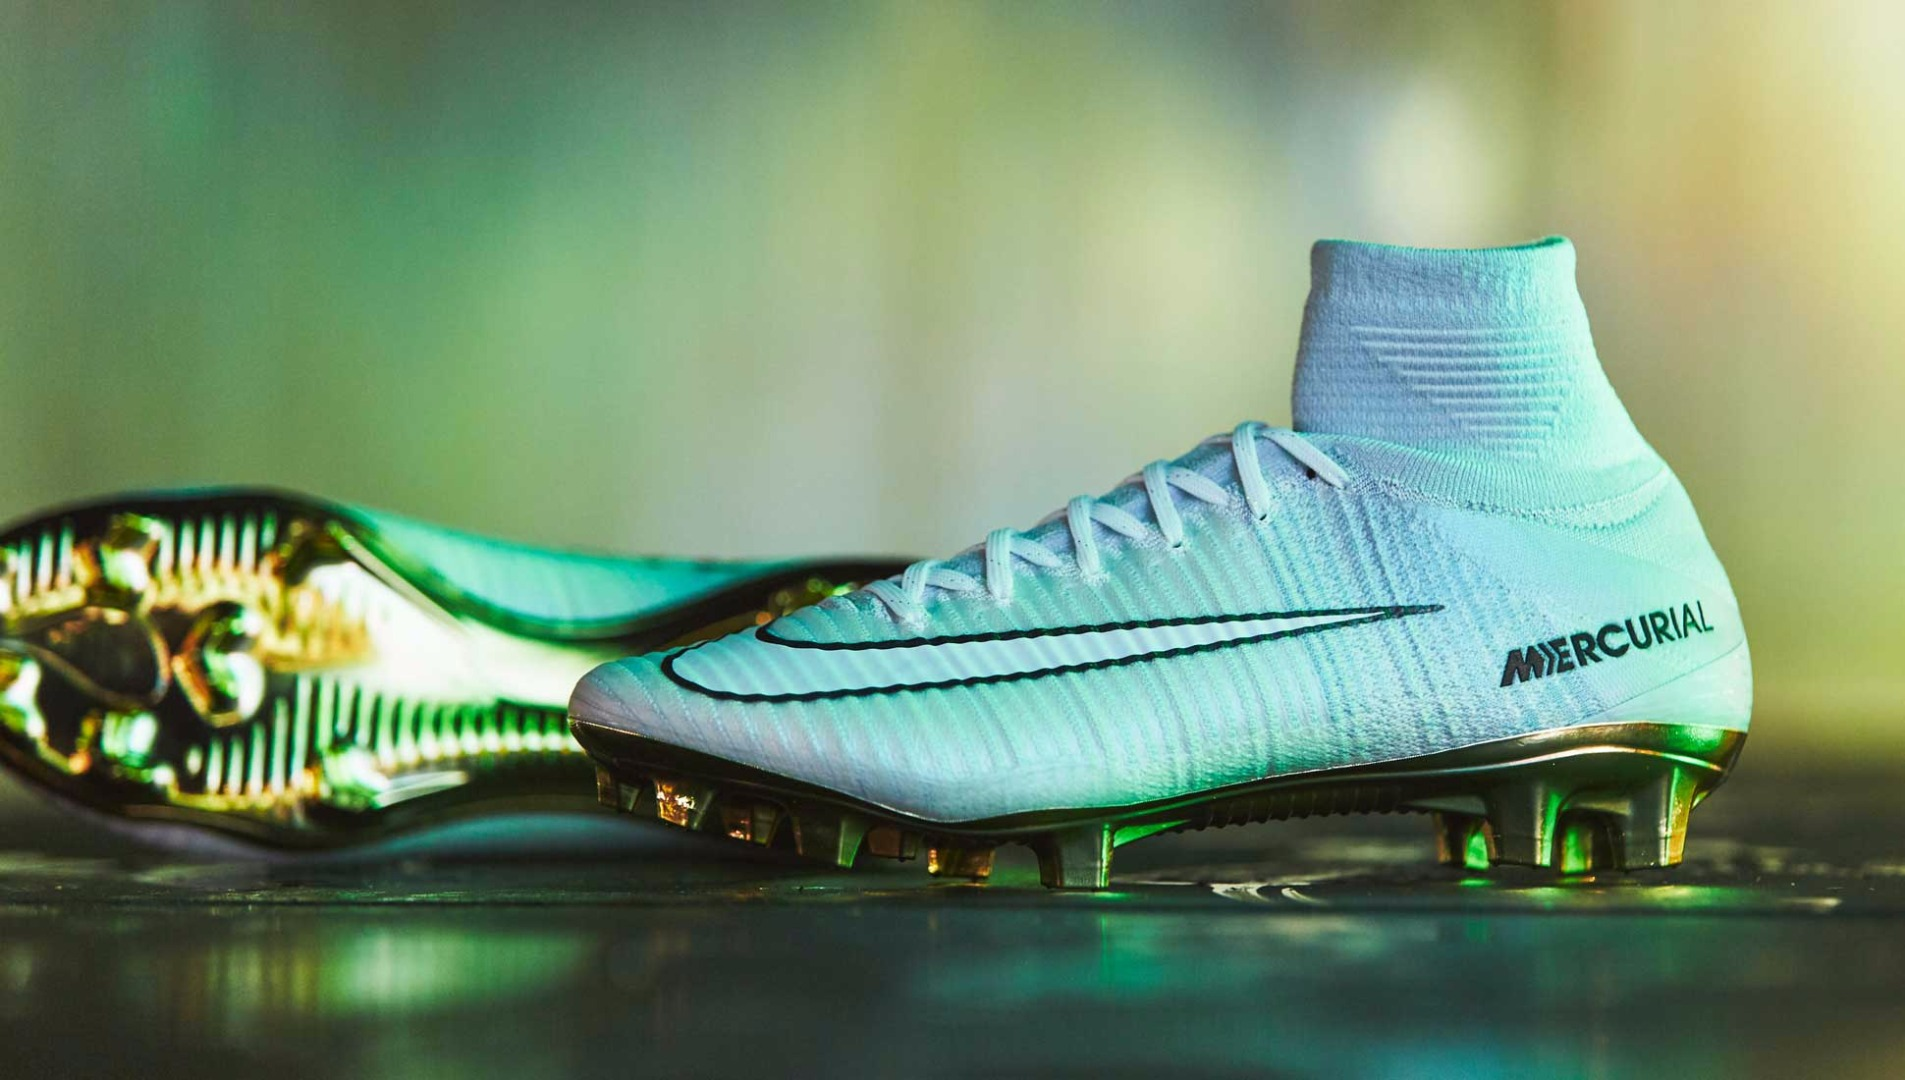 5bc8414b25a Nike Mercurial Superfly CR7 Vitorias Football Boots - SoccerBible